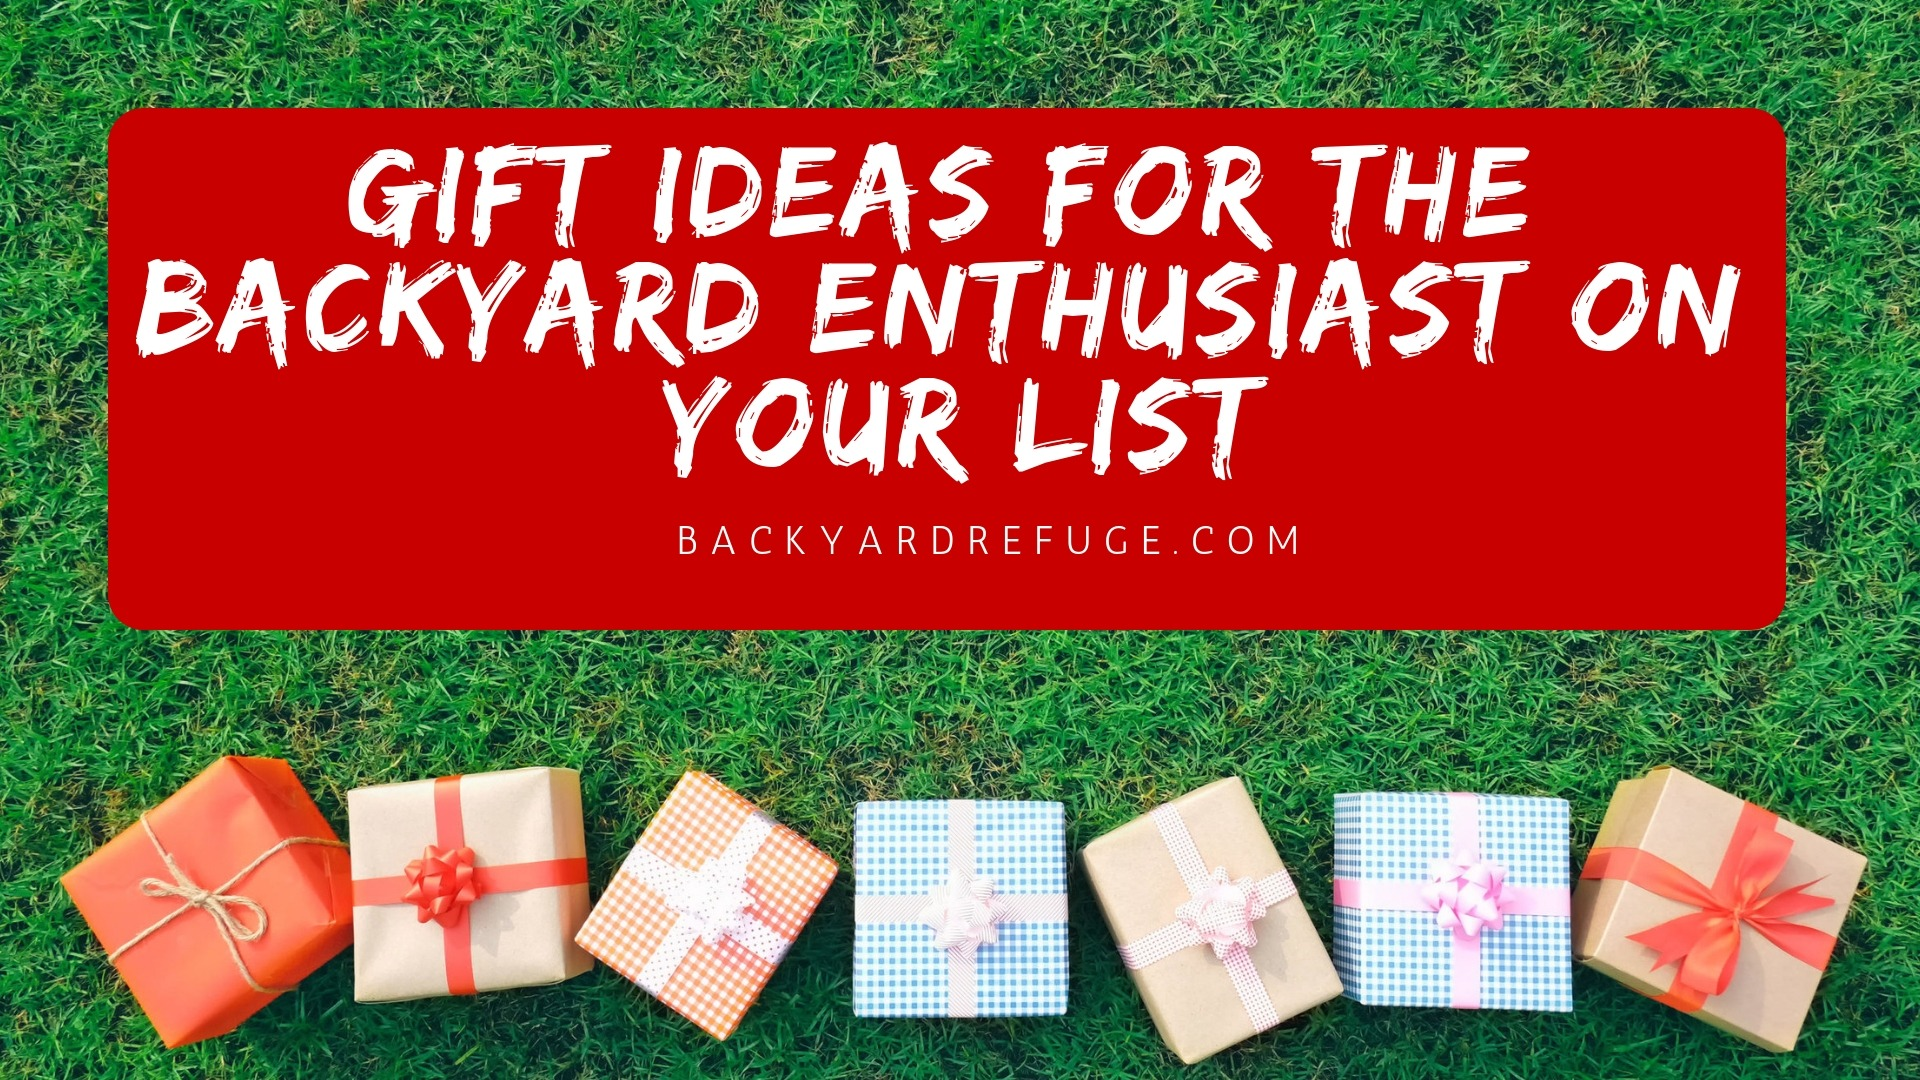 Gift Ideas for the Backyard Enthusiast